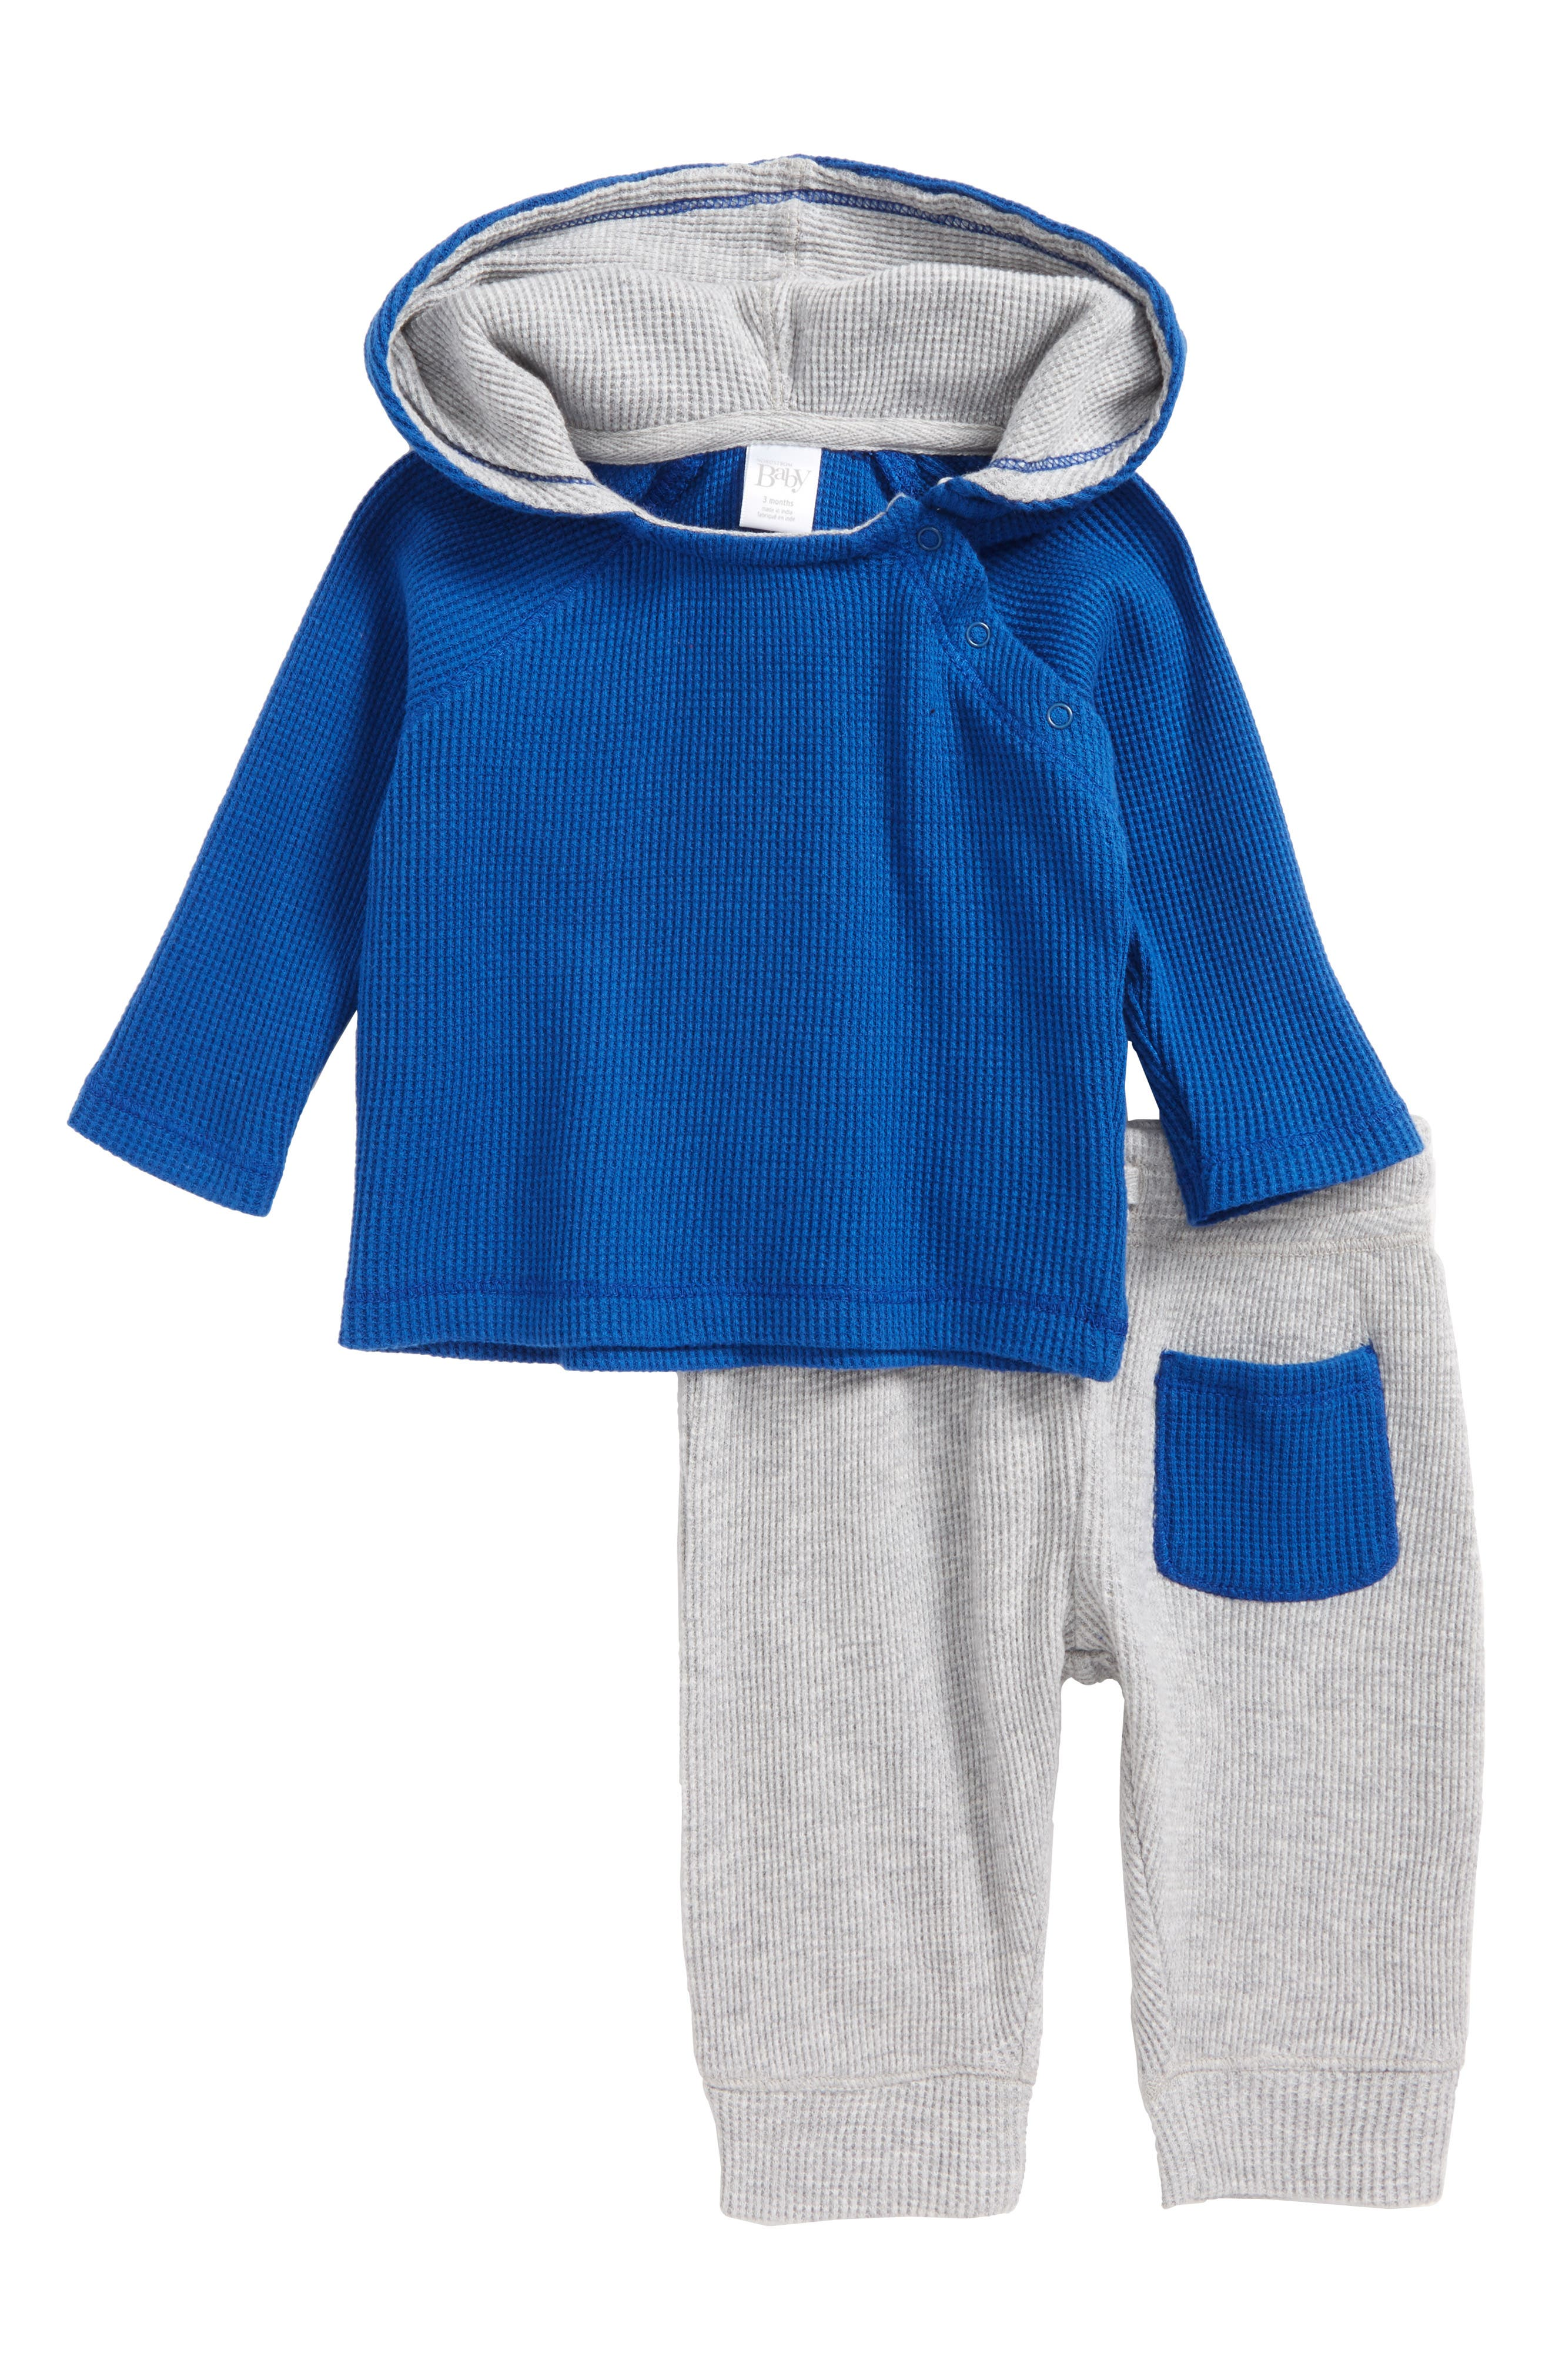 Alternate Image 1 Selected - Nordstrom Baby Thermal Hooded T-Shirt & Pants Set (Baby Boys)